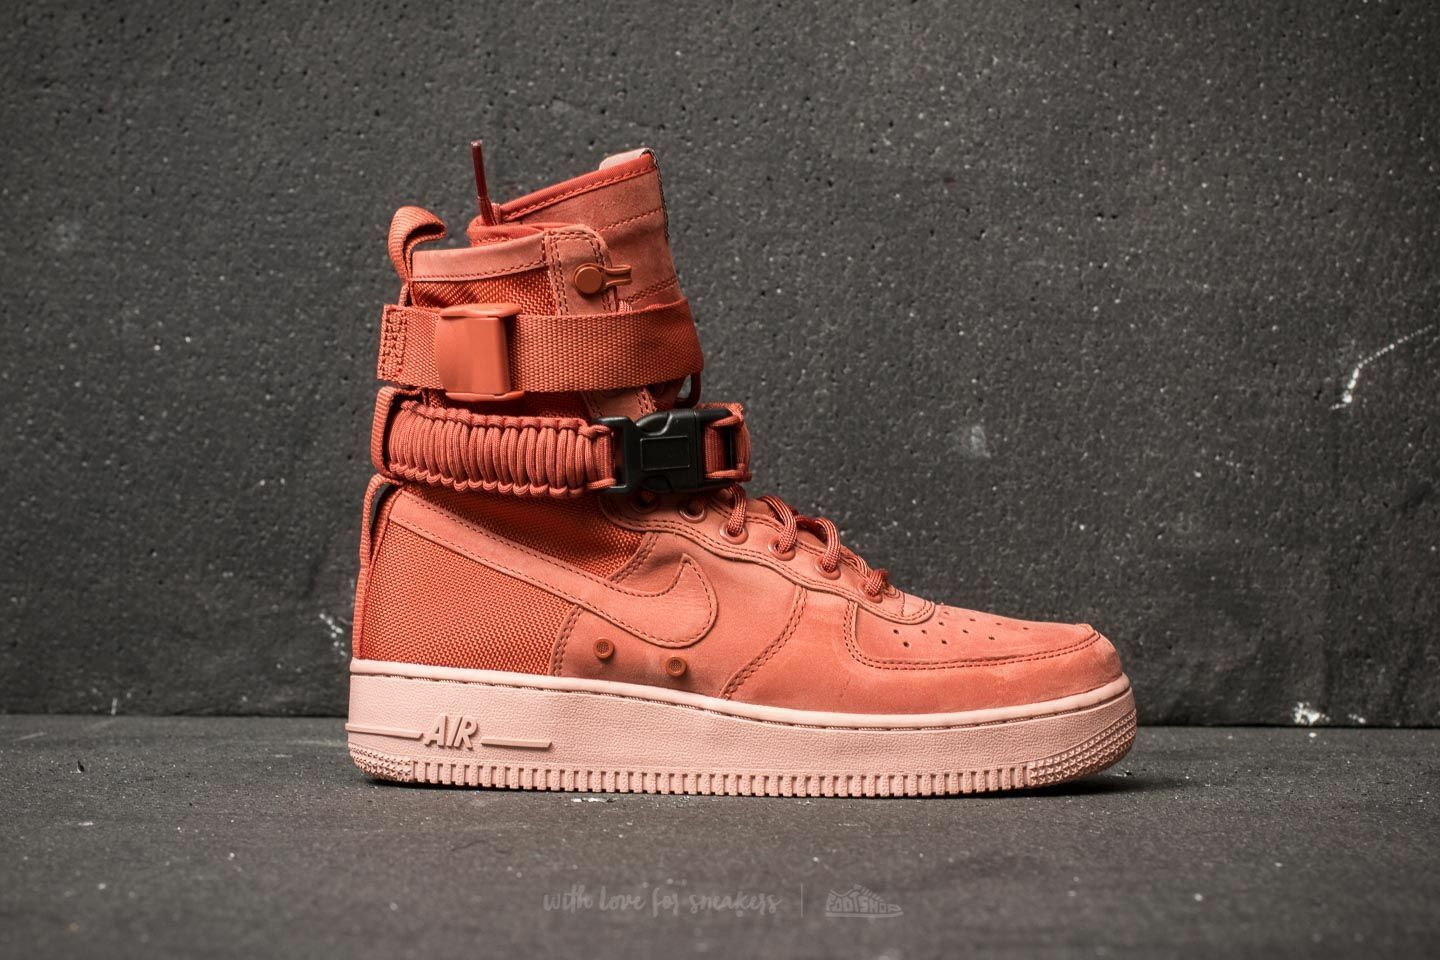 NWOB NIKE W SF AF AIR FORCE 1 SZ 8 SHOES SNEAKERS BASKETBALL RUNNING STREET BALL